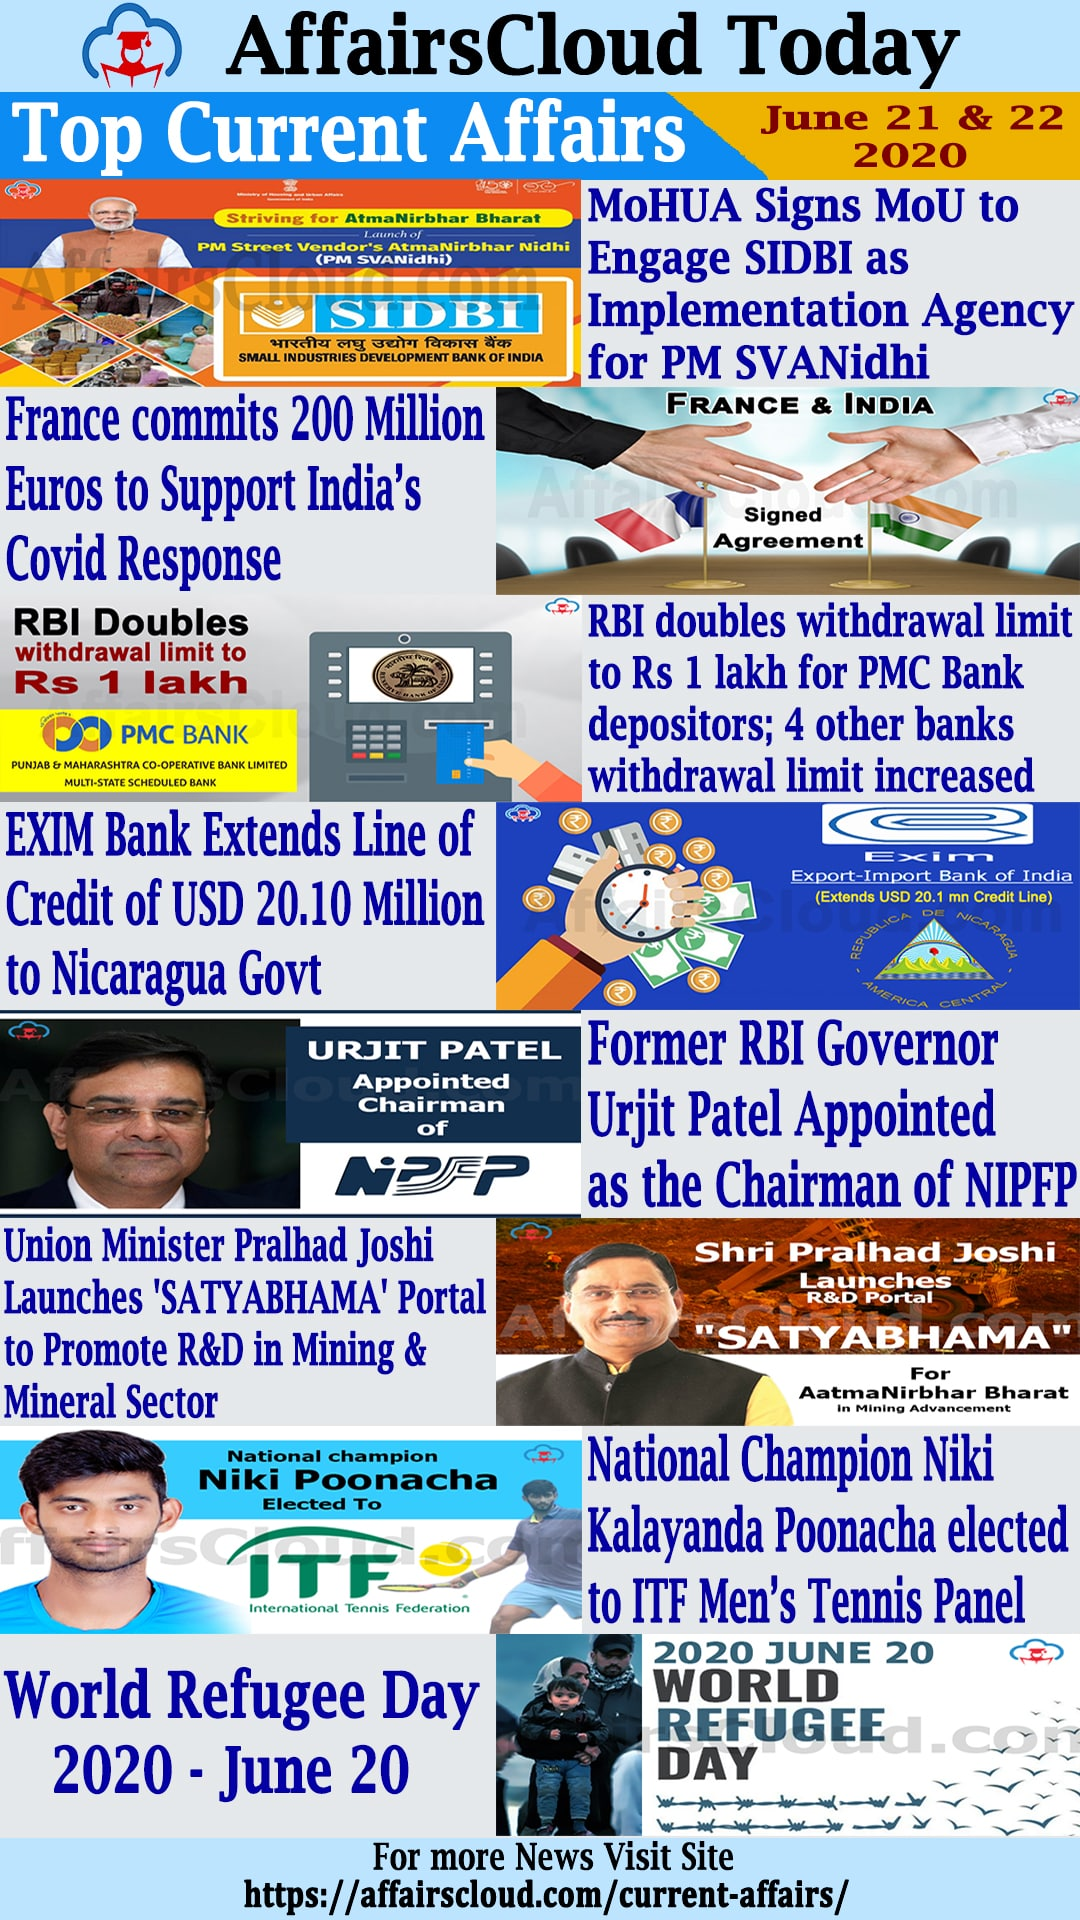 AffairsCloud Today June 21 & 22 2020 new